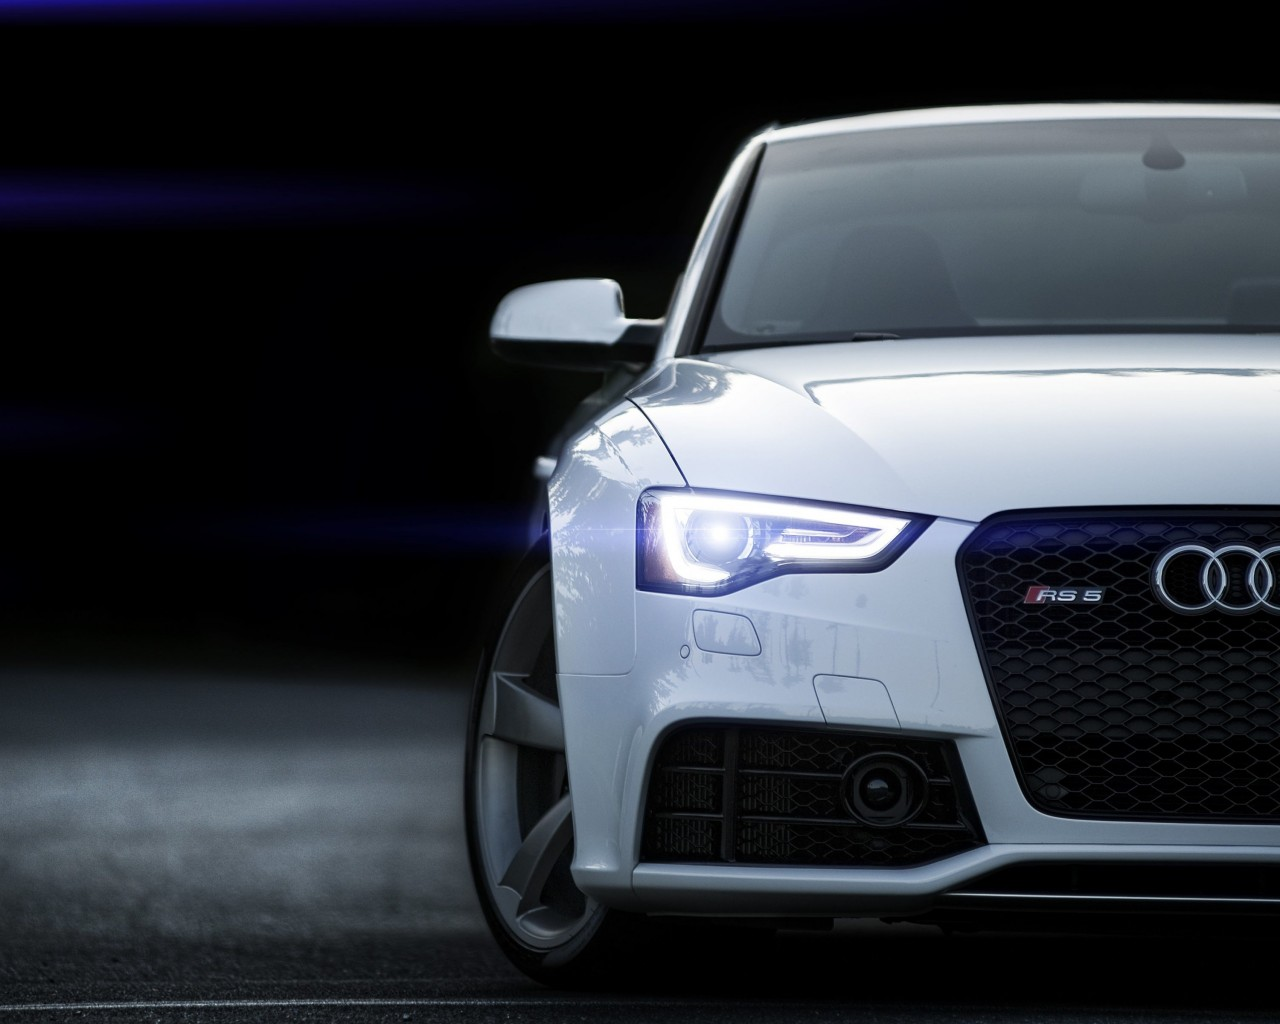 2015 Audi Rs 5 Coupe Hd Wallpaper For 1280x1024 Screens